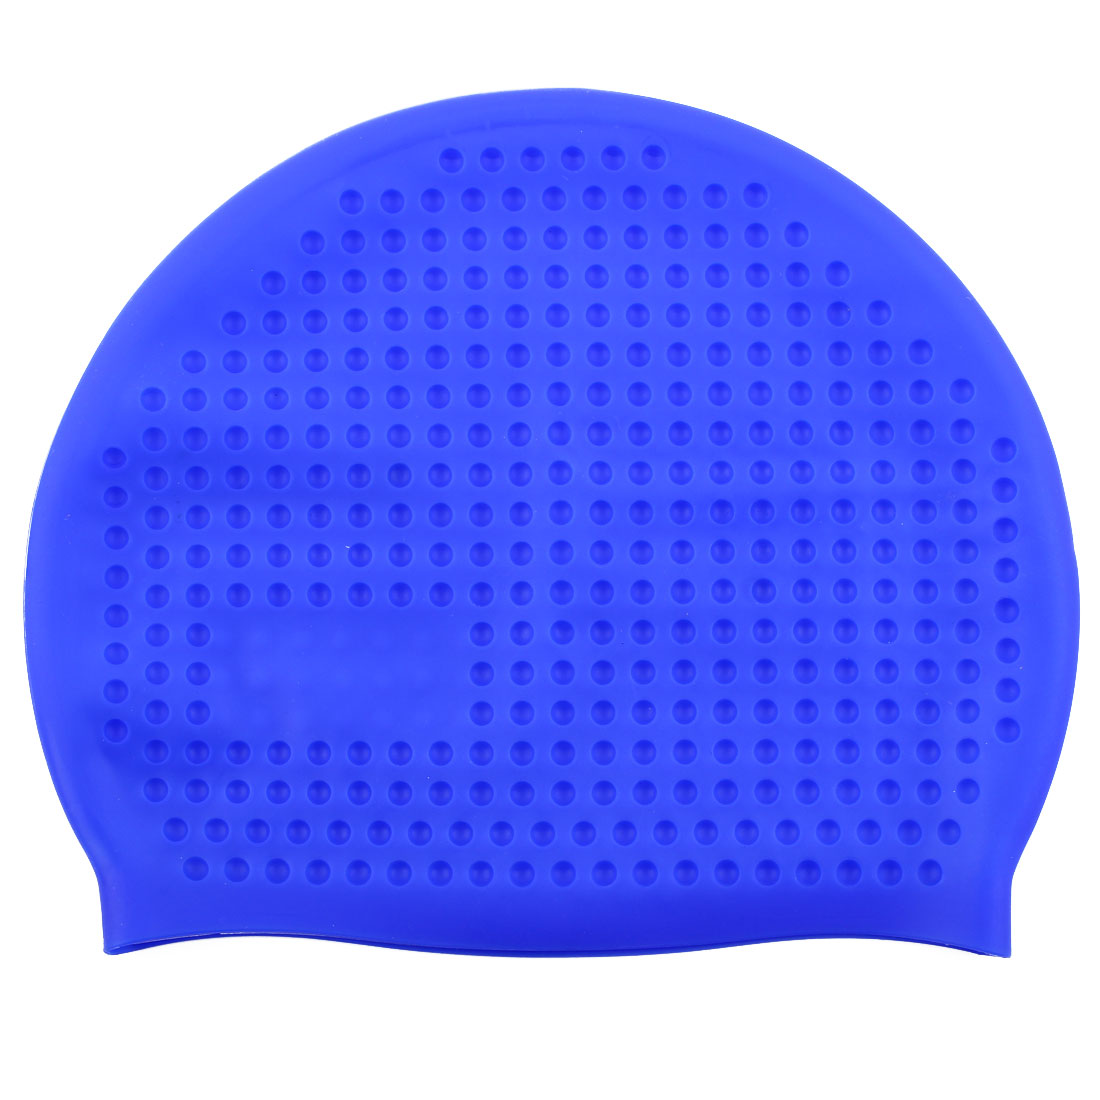 Adult Silicone Dome Shaped Water Resistant Elastic Swimming Cap Portable Bathing Hat Sapphire Blue